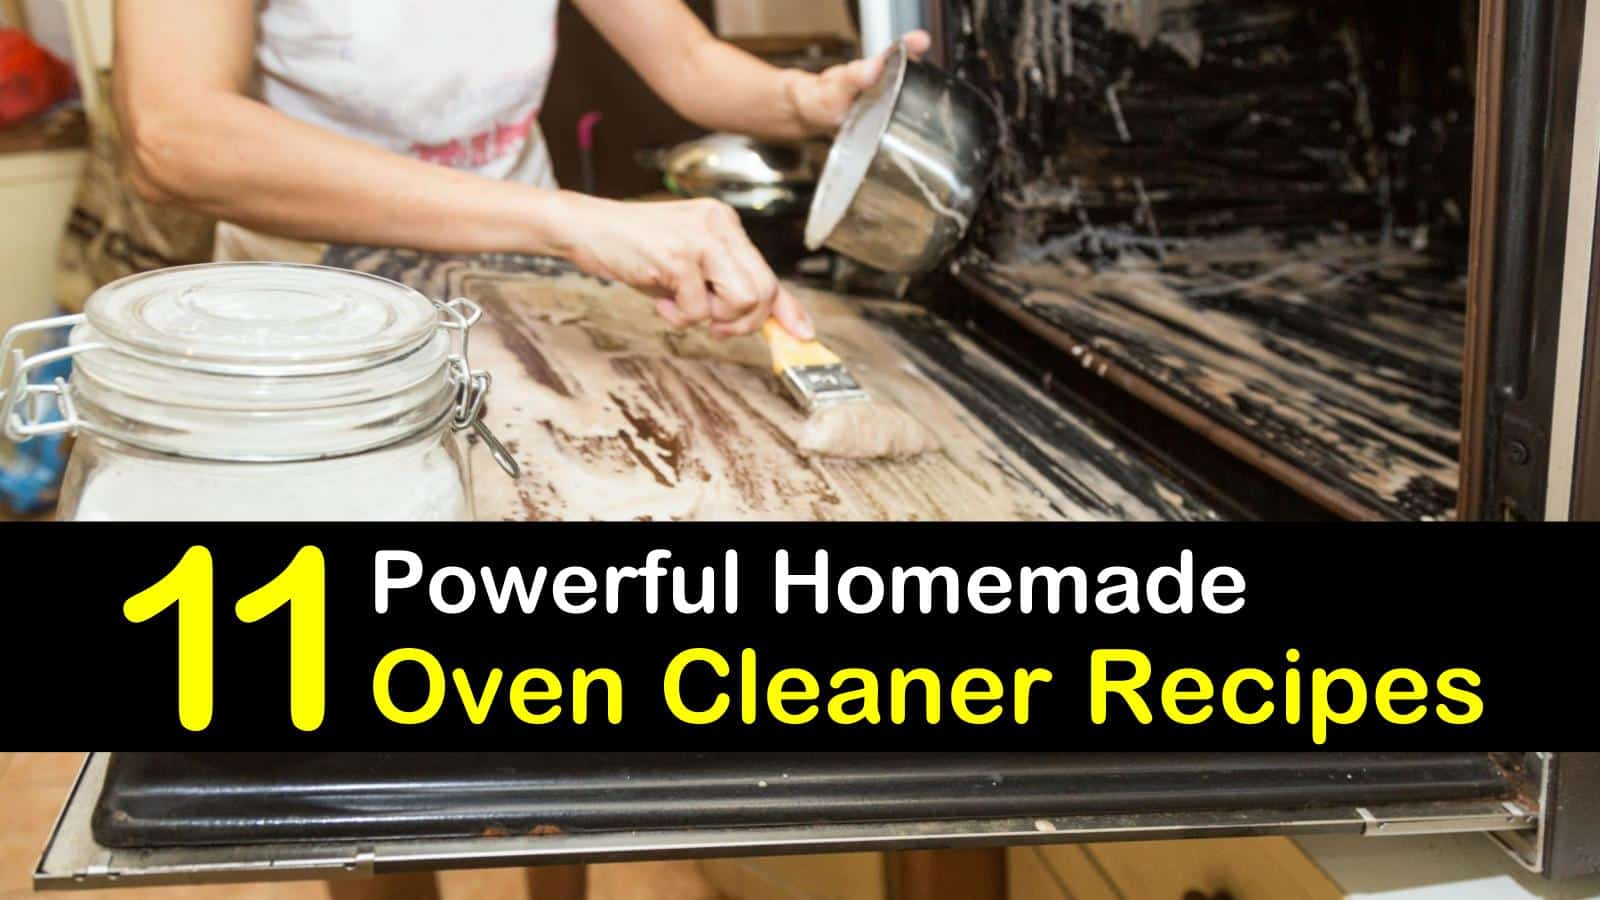 11 Easy Ways to Make Your Own Oven Cleaner